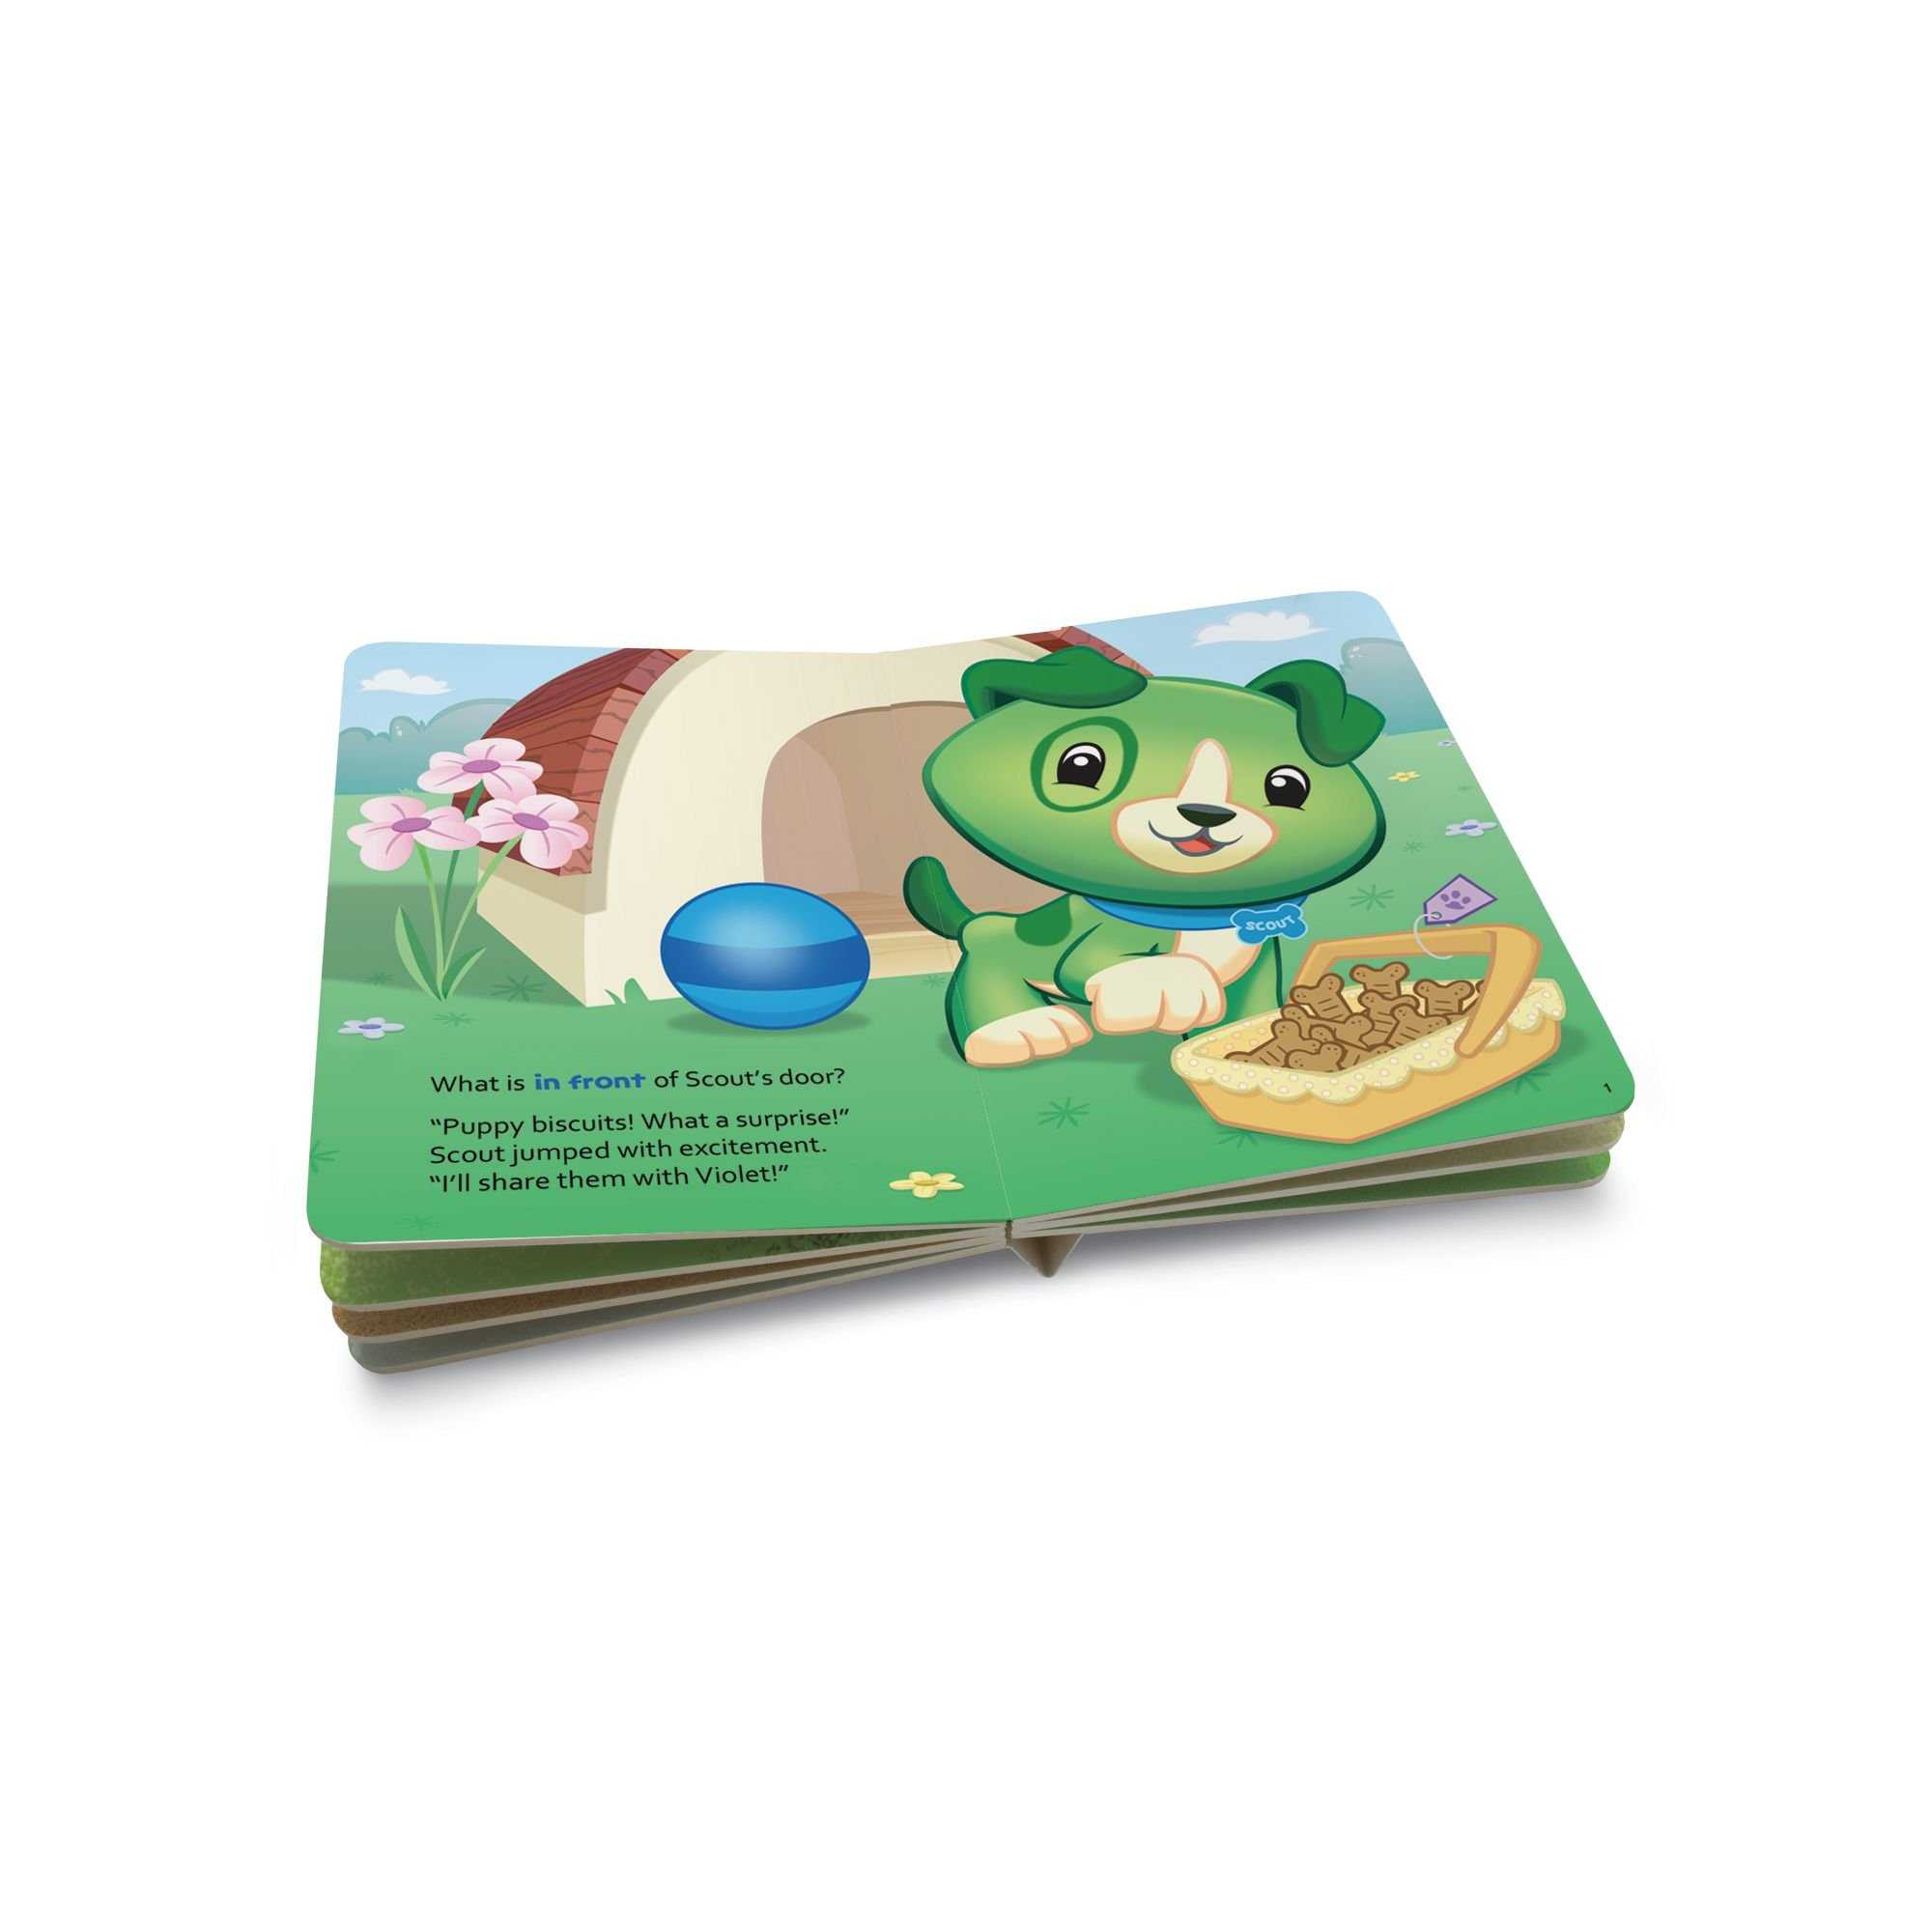 LeapFrog Tag Junior Book Scout And Friends: A Surprise for Scout (works with LeapReader Junior) by LeapFrog (Image #5)